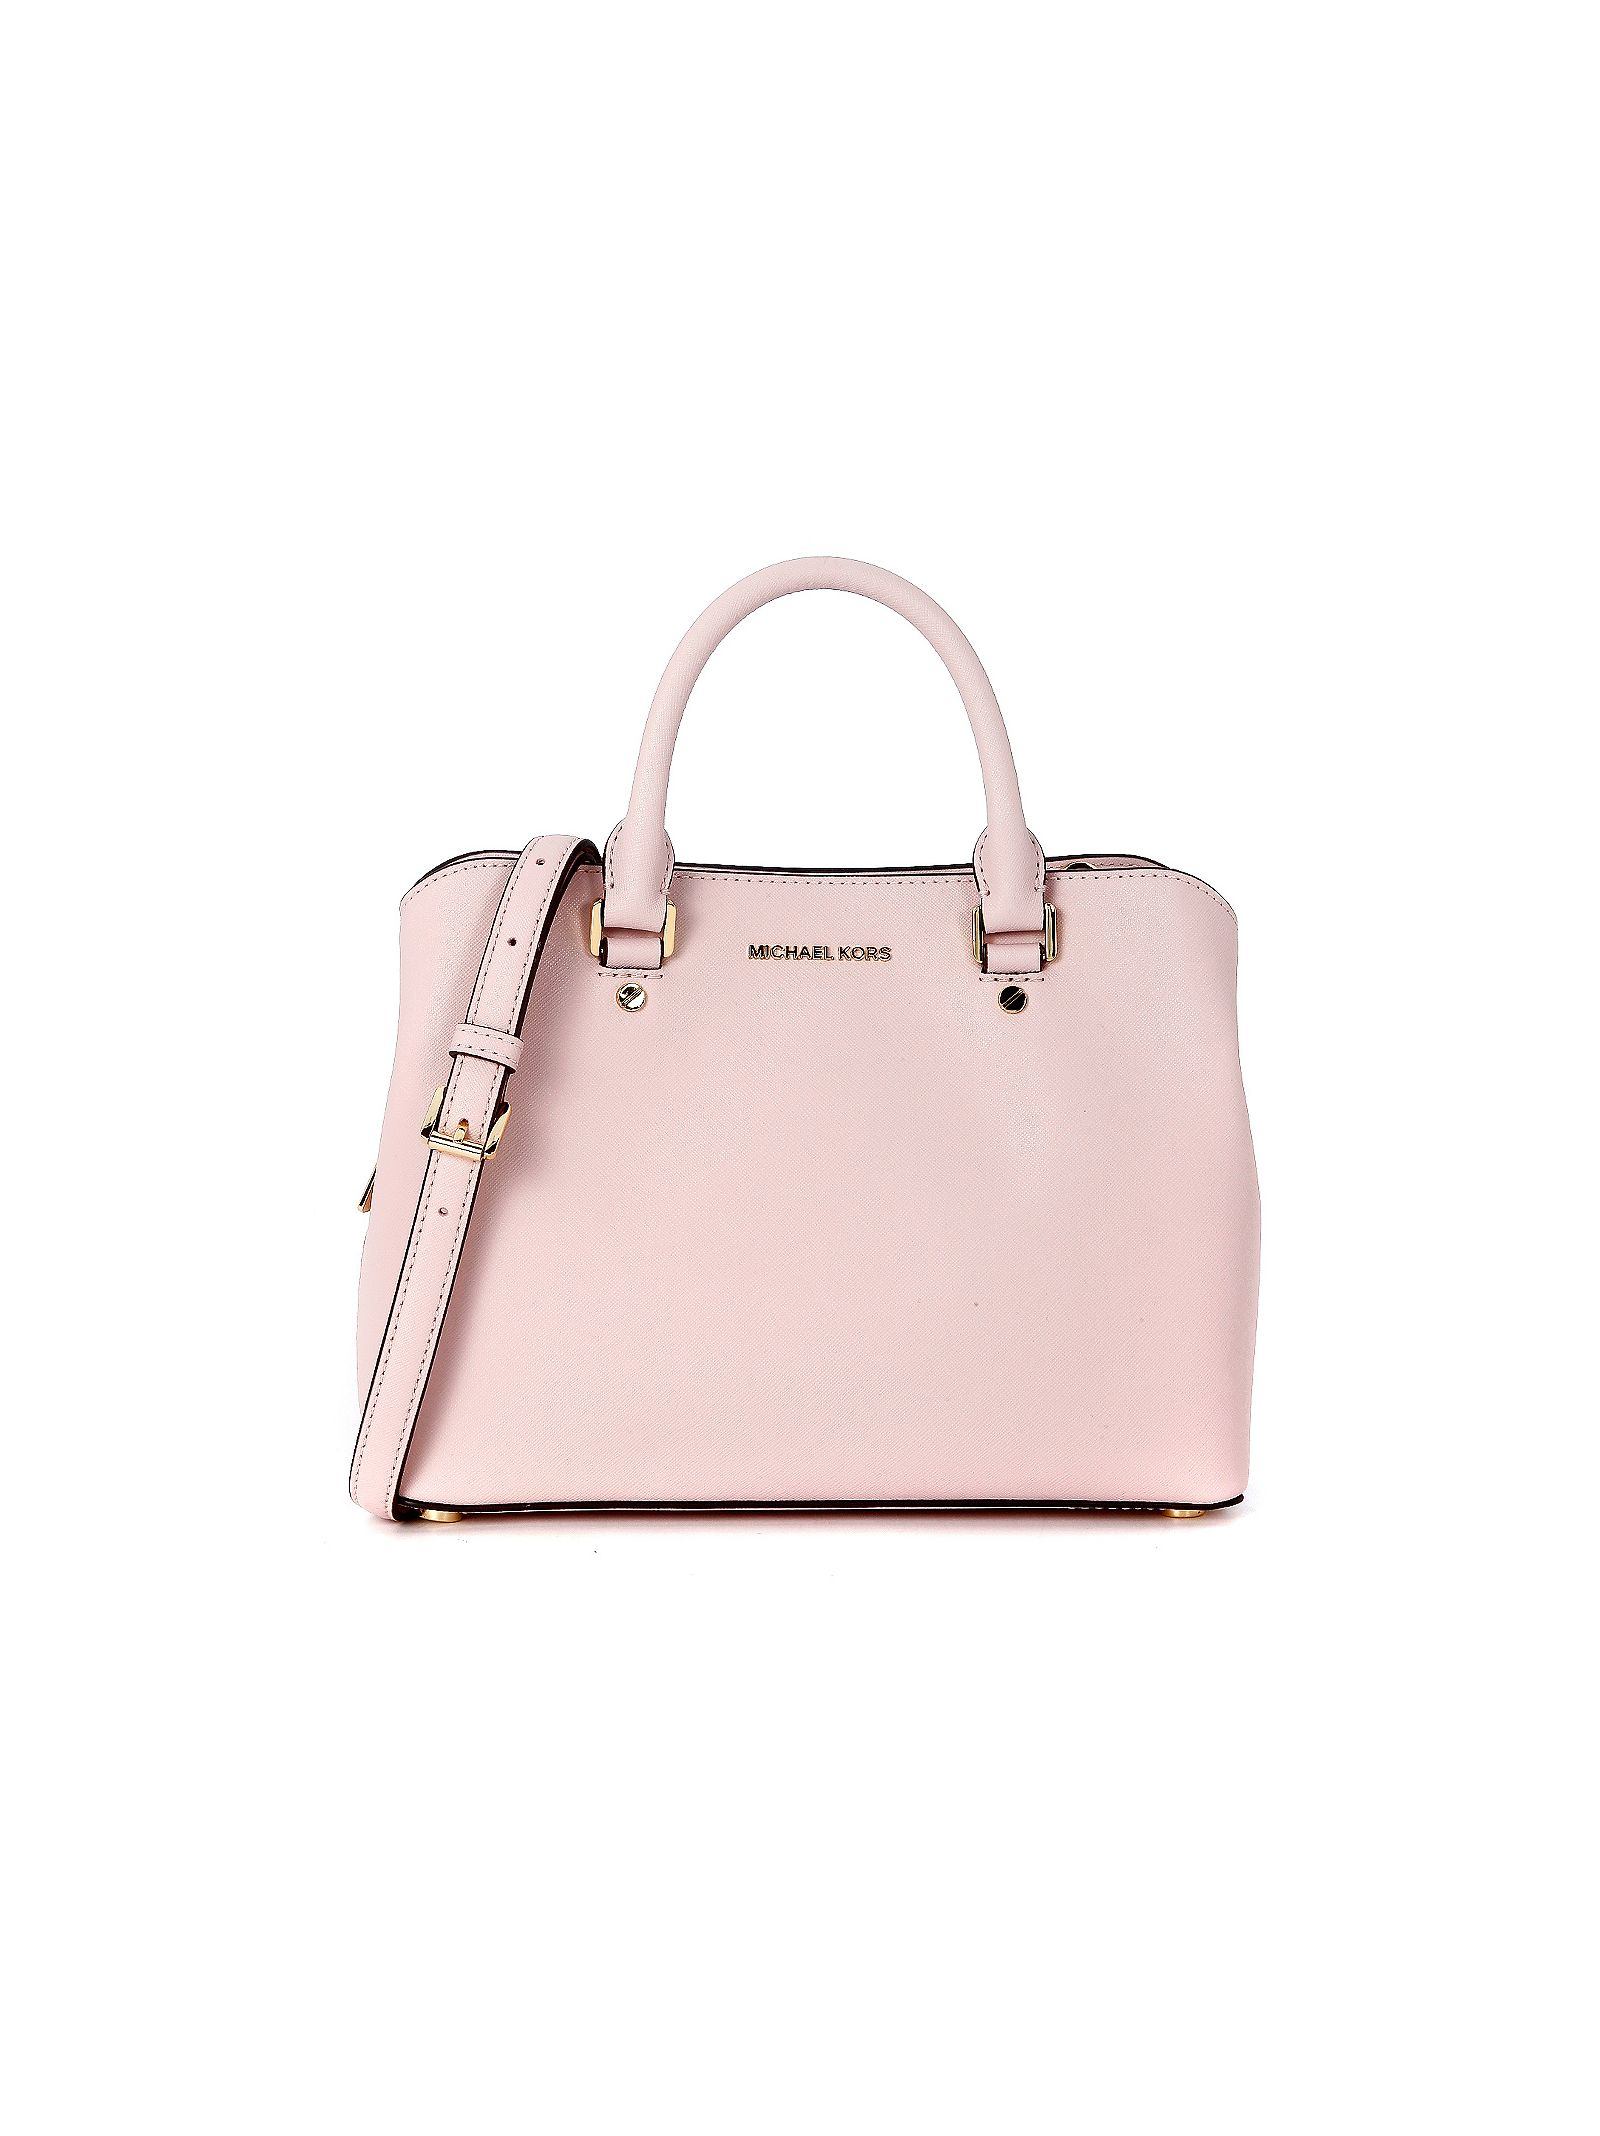 michael kors female  michael kors savannah bag in pale pink saffiano leather